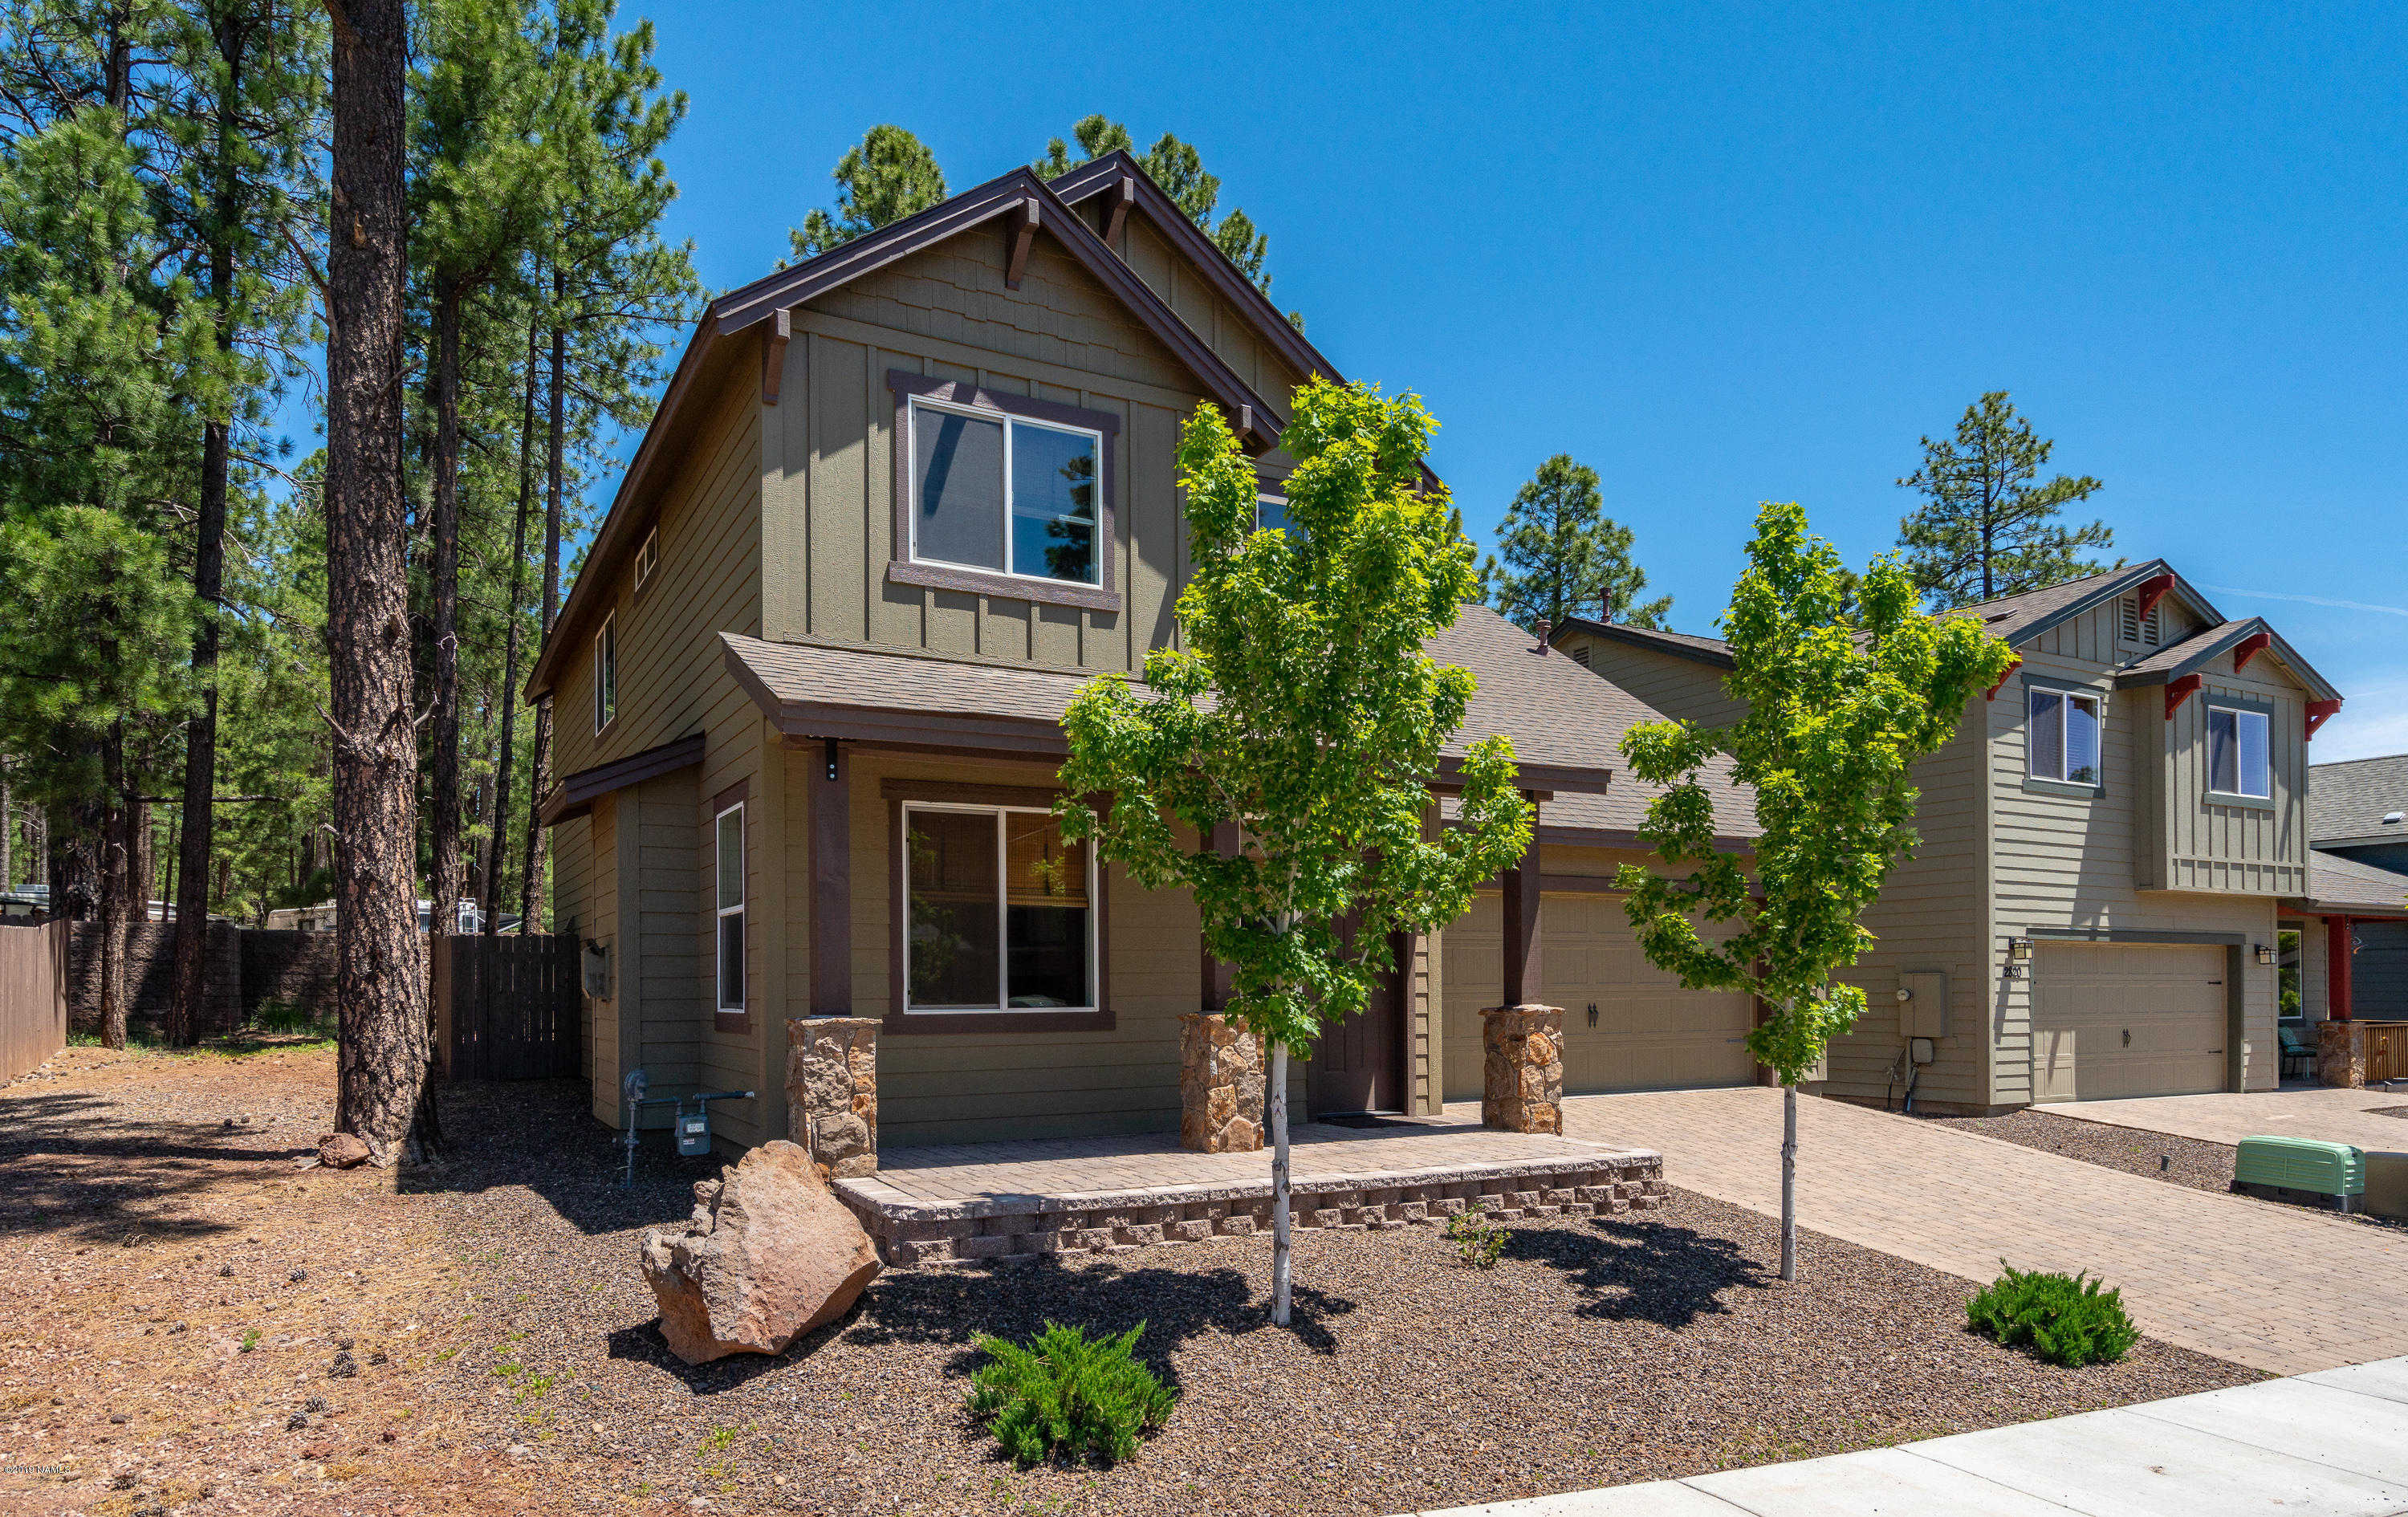 $474,900 - 5Br/3Ba -  for Sale in Flagstaff